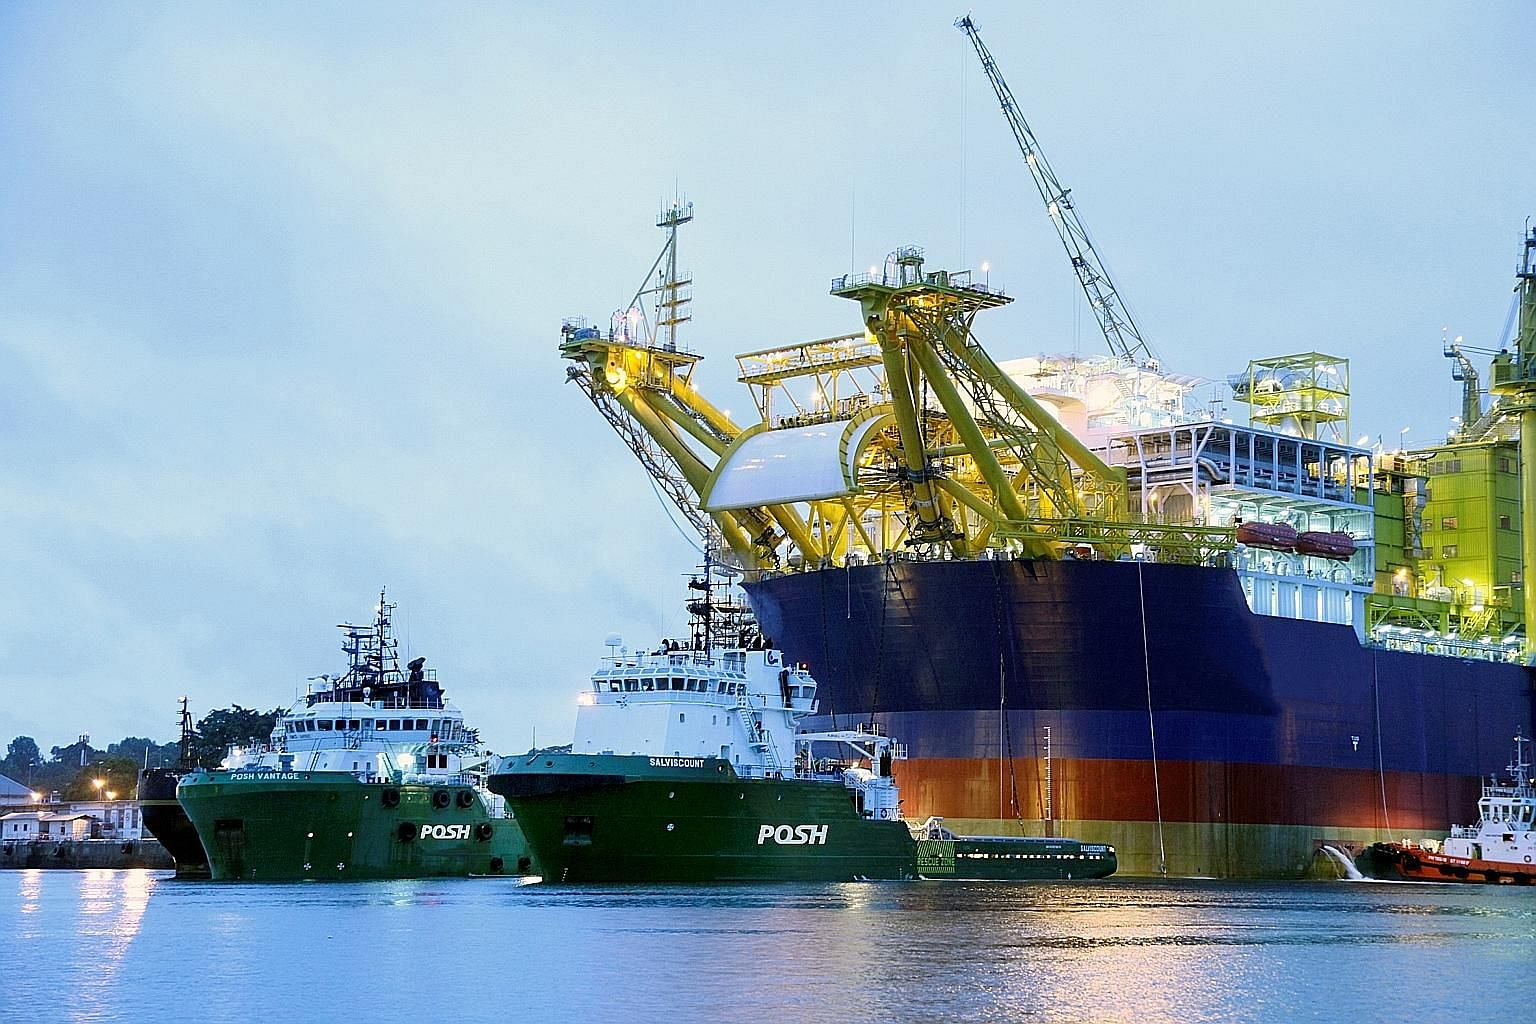 Pacc Offshore Services Holdings, the largest Asia-based international operator of support vessels for offshore oilfields in Asia, Africa and Latin America, has been named as a potential delisting candidate by CIMB Research.